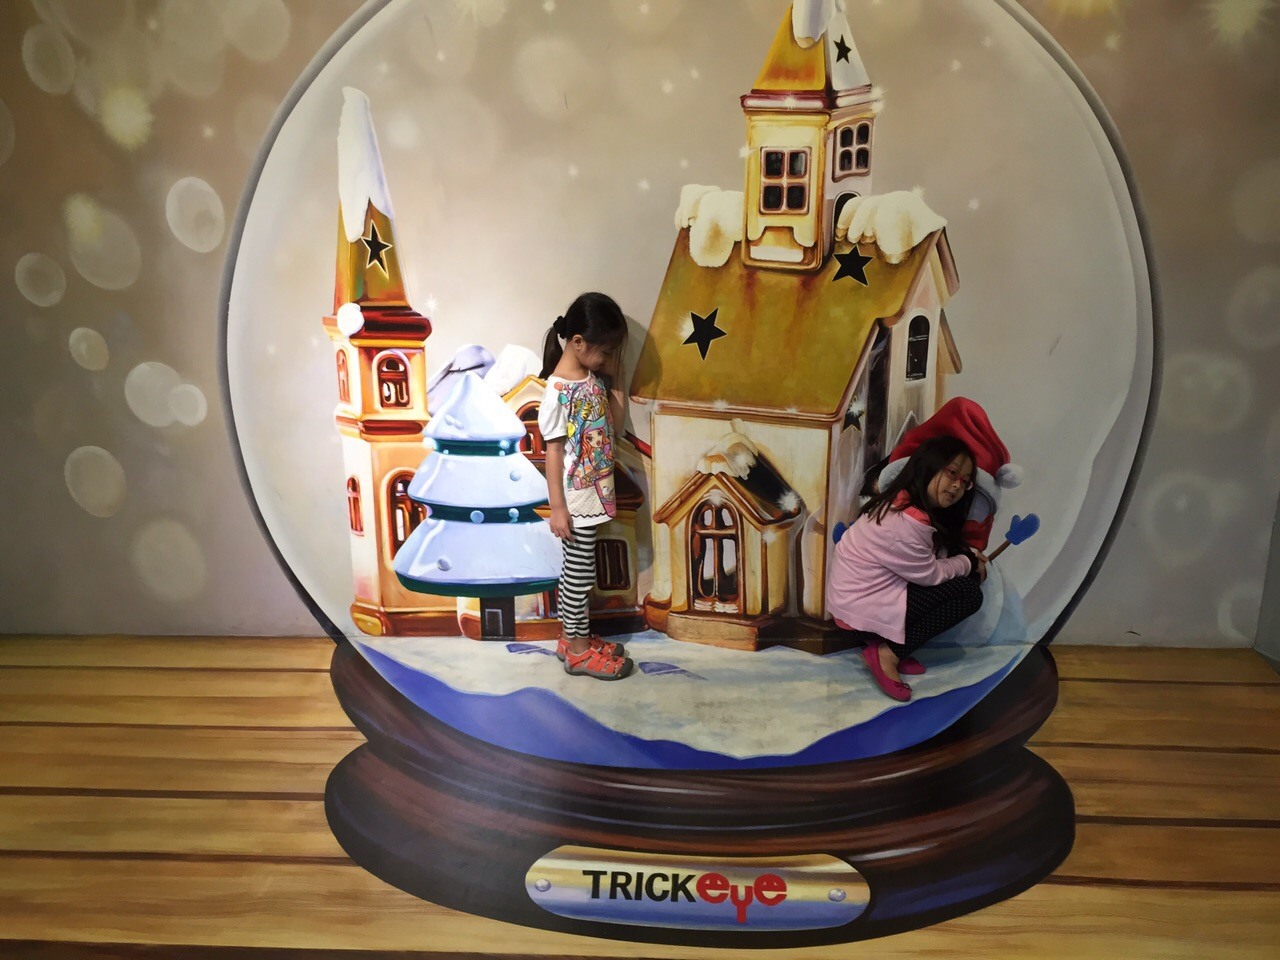 With Kids We Go Trickeye Museum Tiket Singapore Had Bundle Tickets As Part Of A Moe Family Day Package That Could Use Within Stipulated Period Time And Since Were Visiting